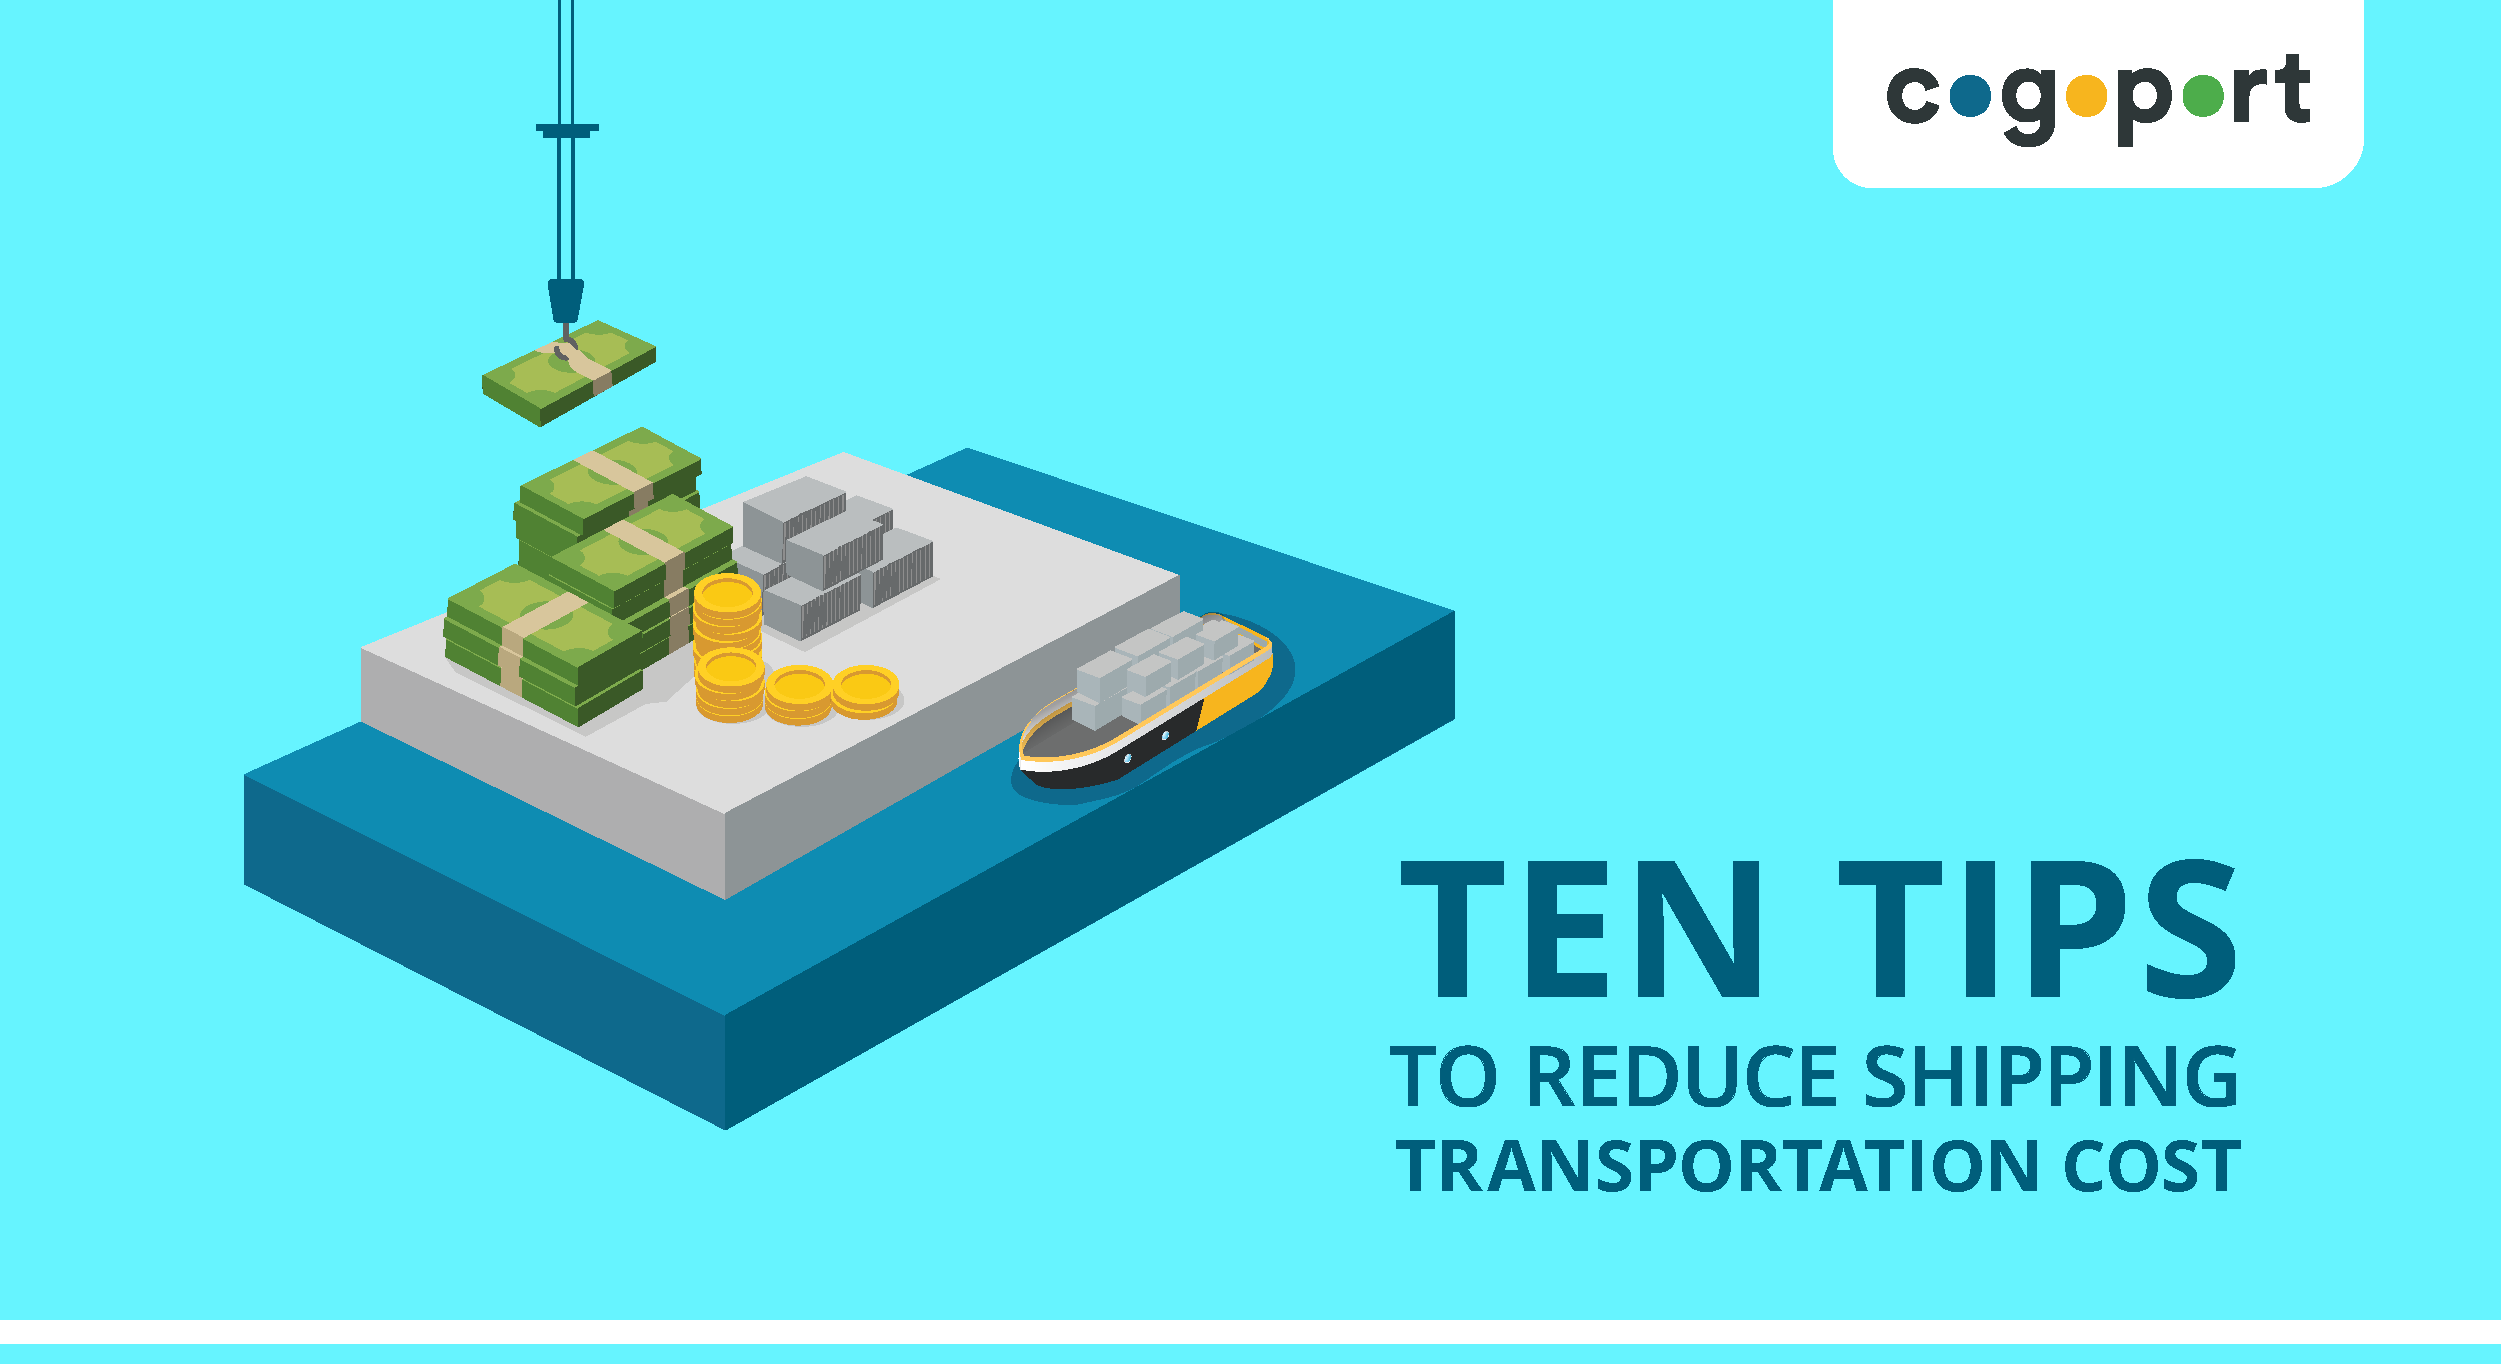 10 Tips to Reduce Transportation Cost in Shipping